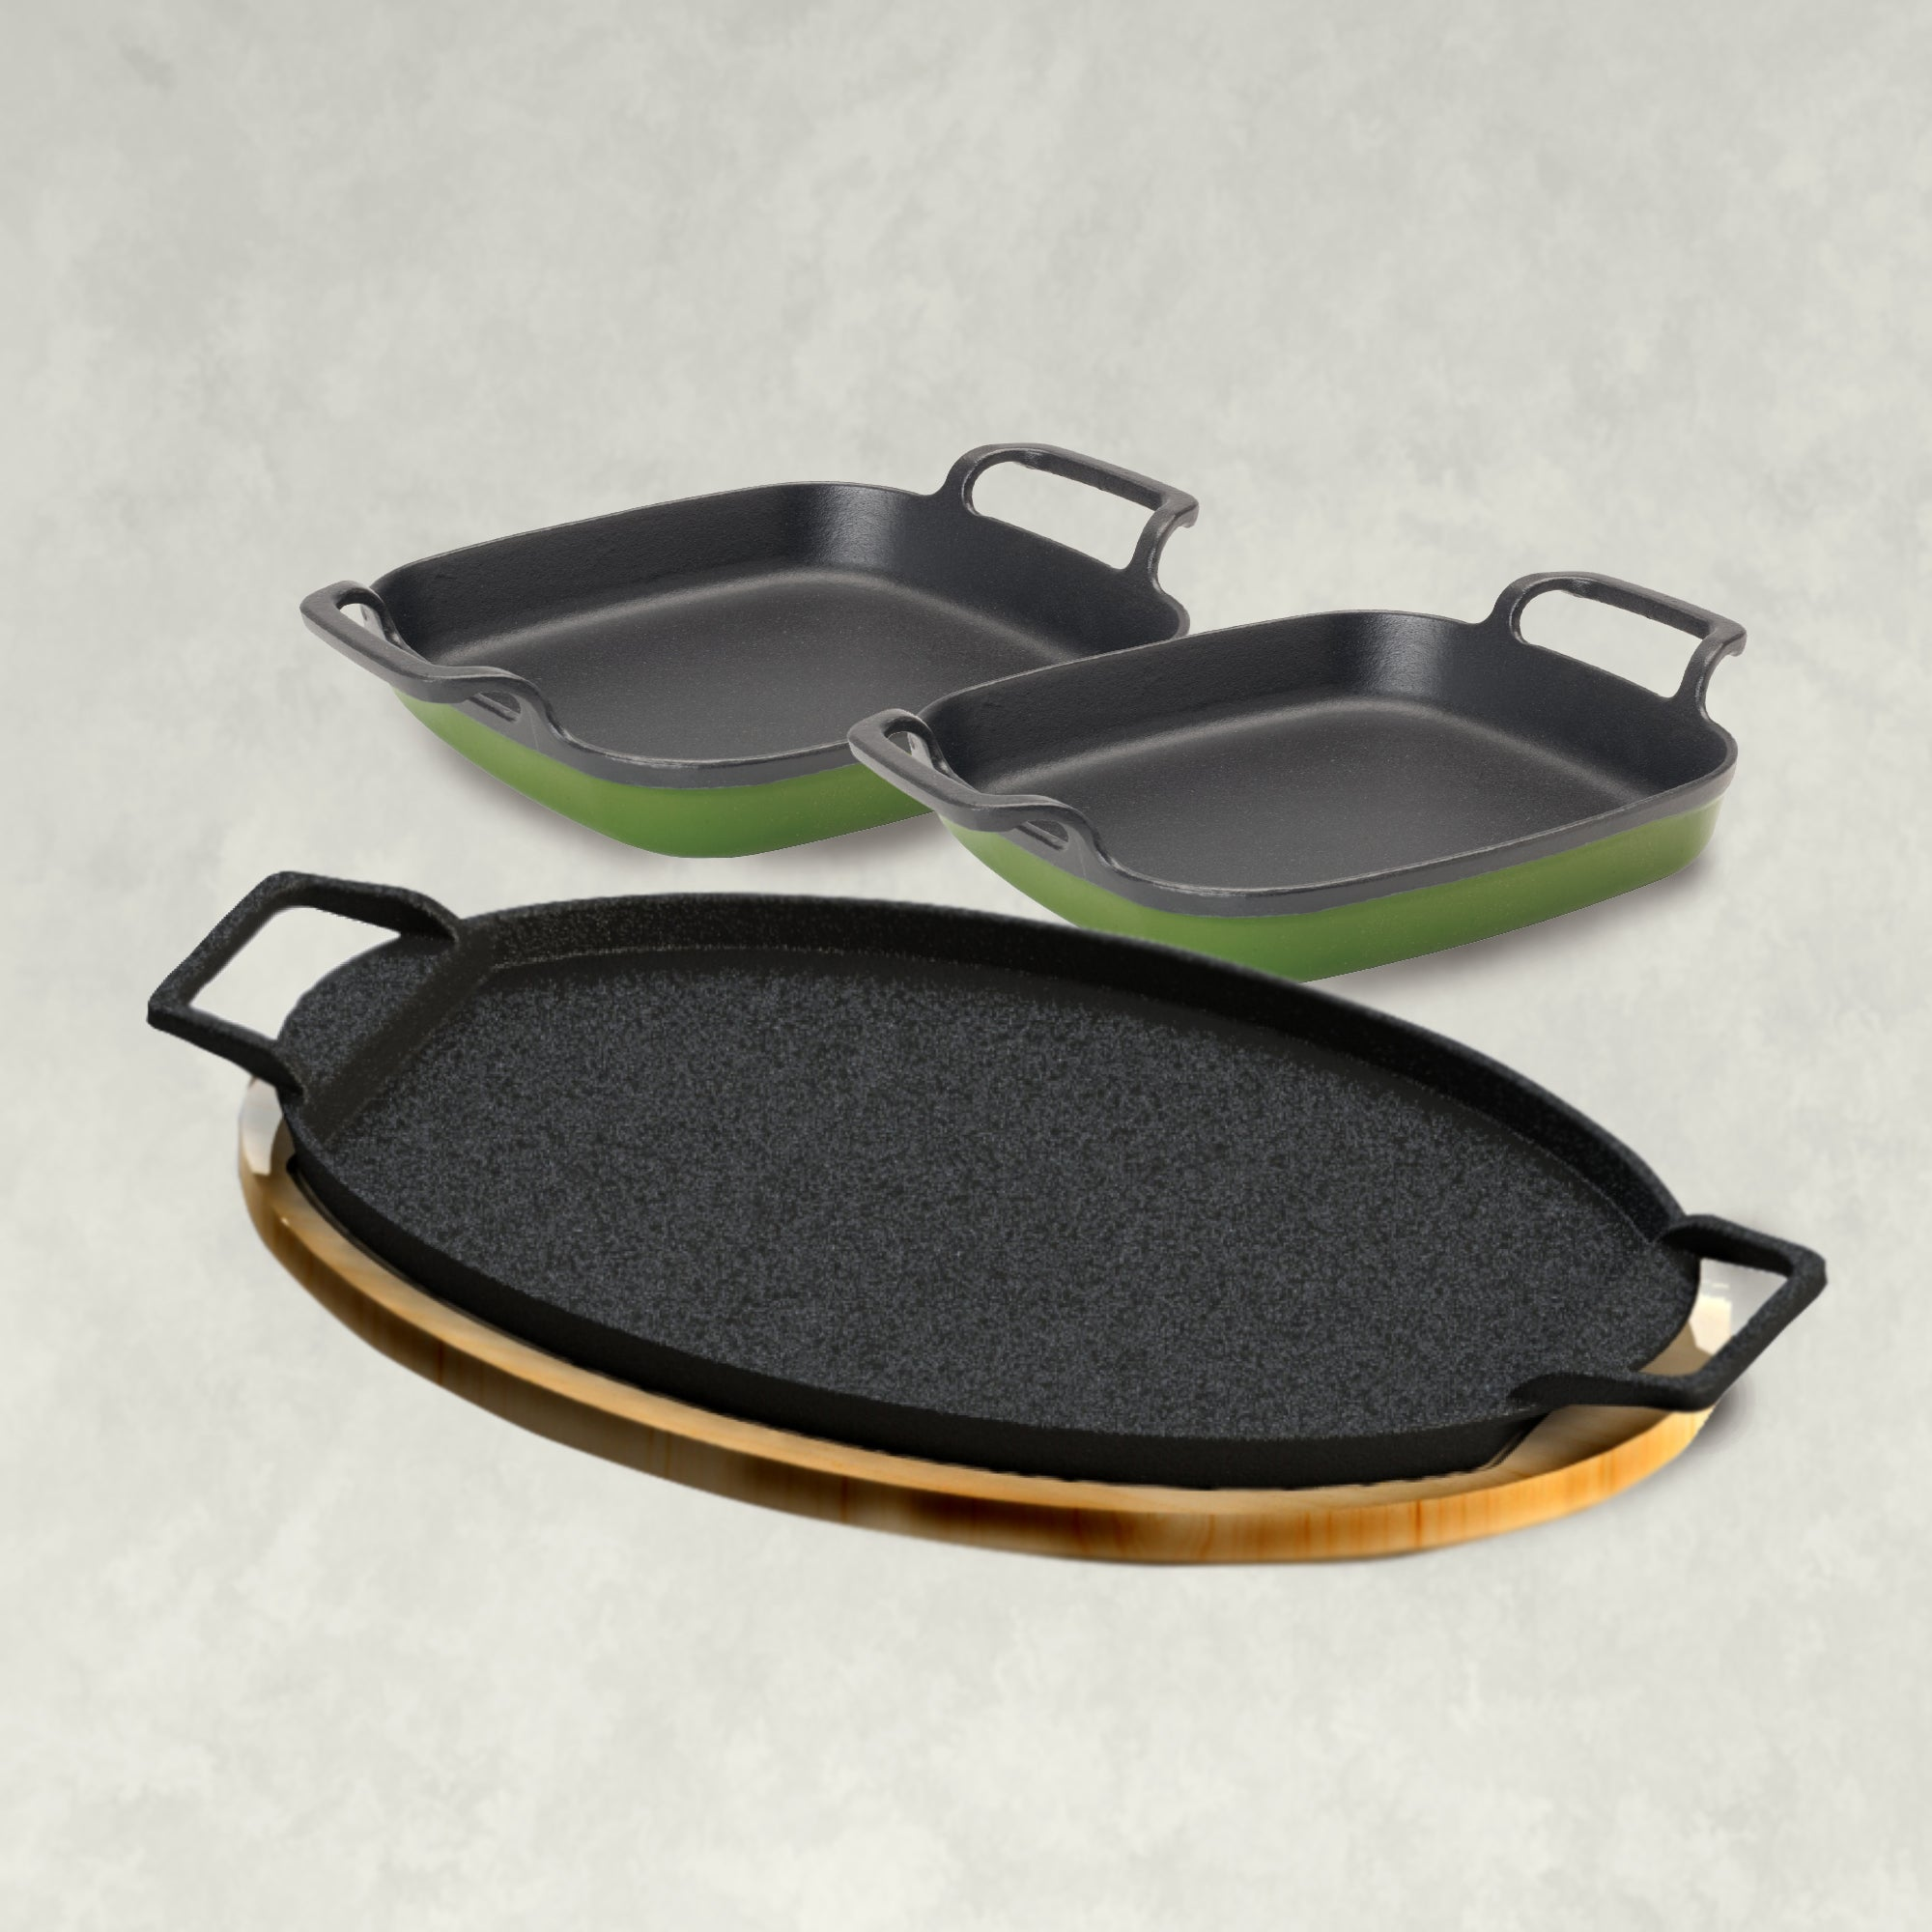 Fiesta Fajita Pan Set, cypress green